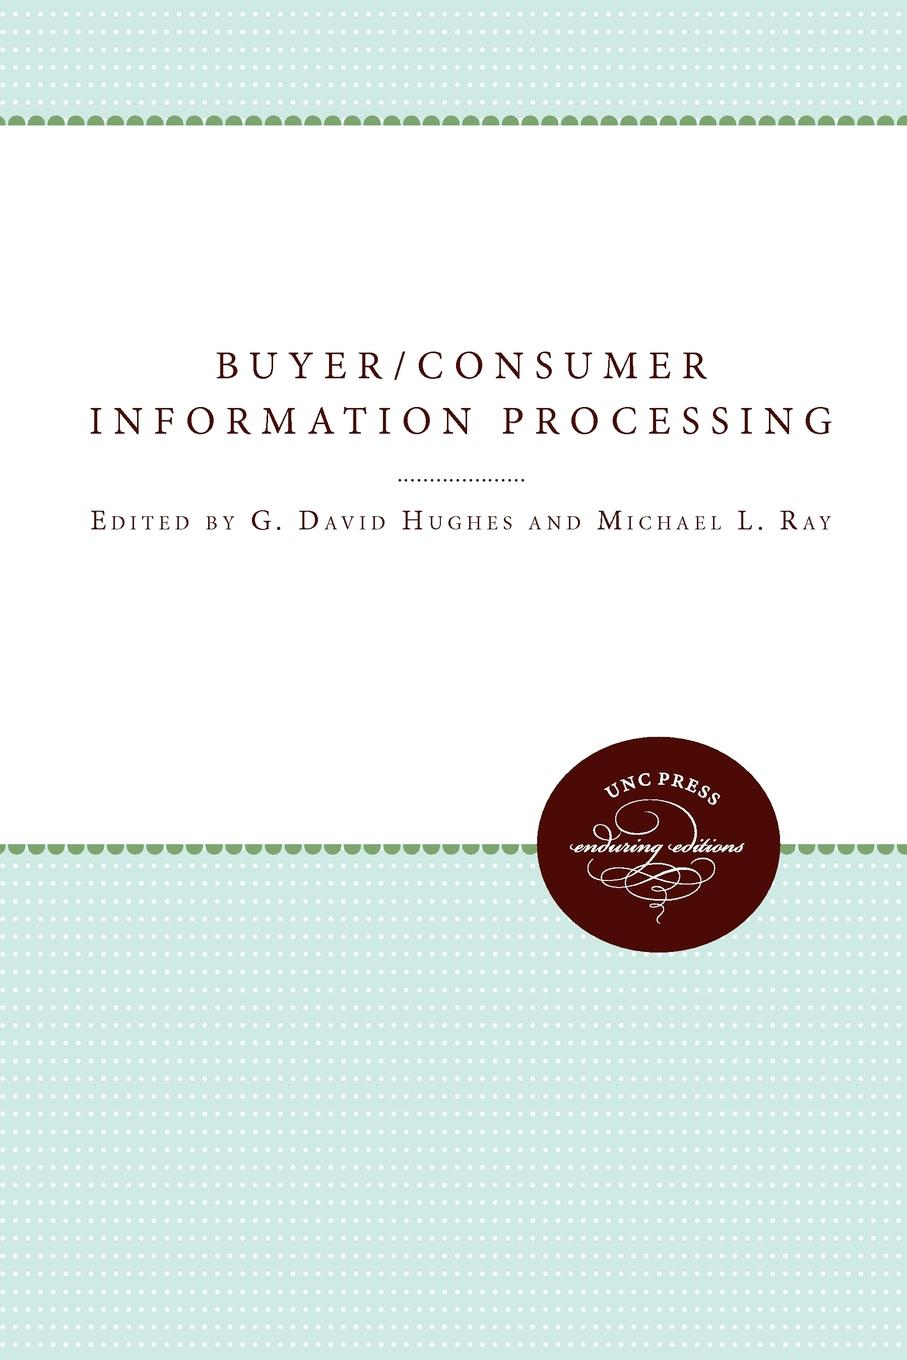 G. David Hughes Buyer/Consumer Information Processing sean c keenan financial institution advantage and the optimization of information processing